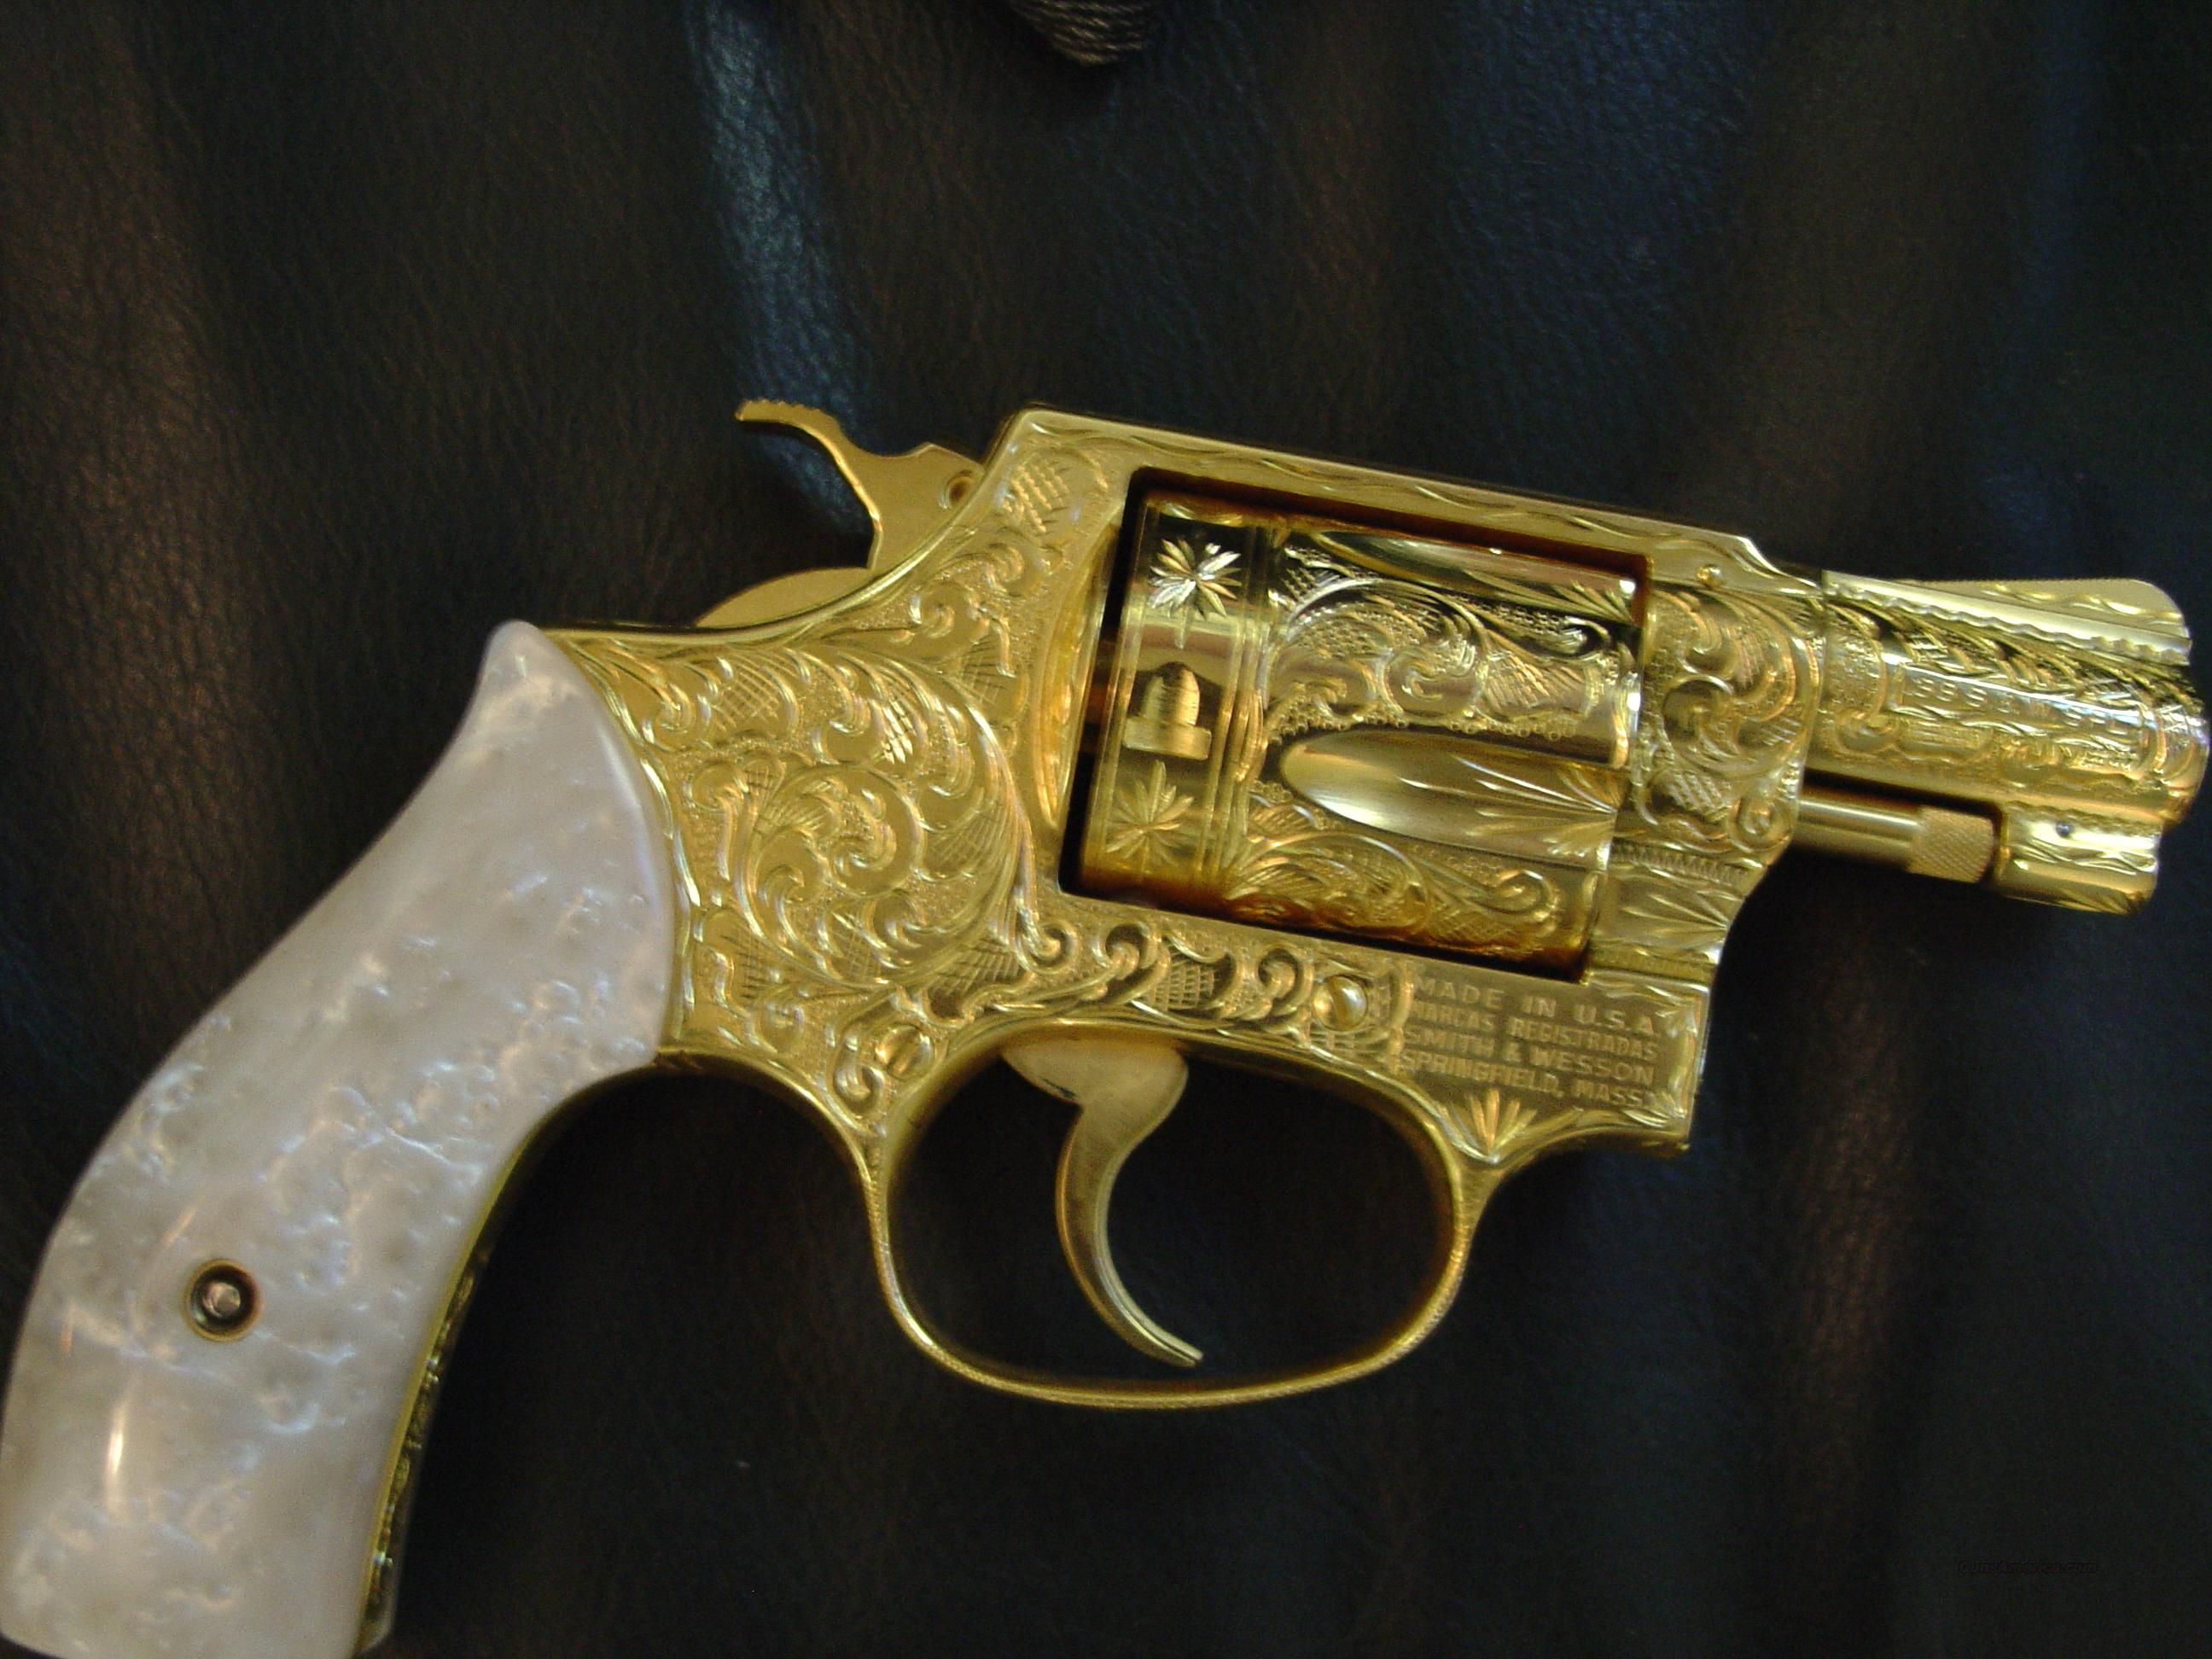 "Smith & Wessom model 36 -no dash,Master engraved by Flannery,24K gold plated,pearlite grips,38 Sp.,1 3/4"" barrel,Chiefs Special-1 of a kind showpiece-awesome !!  Guns > Pistols > Smith & Wesson Revolvers > Pocket Pistols"